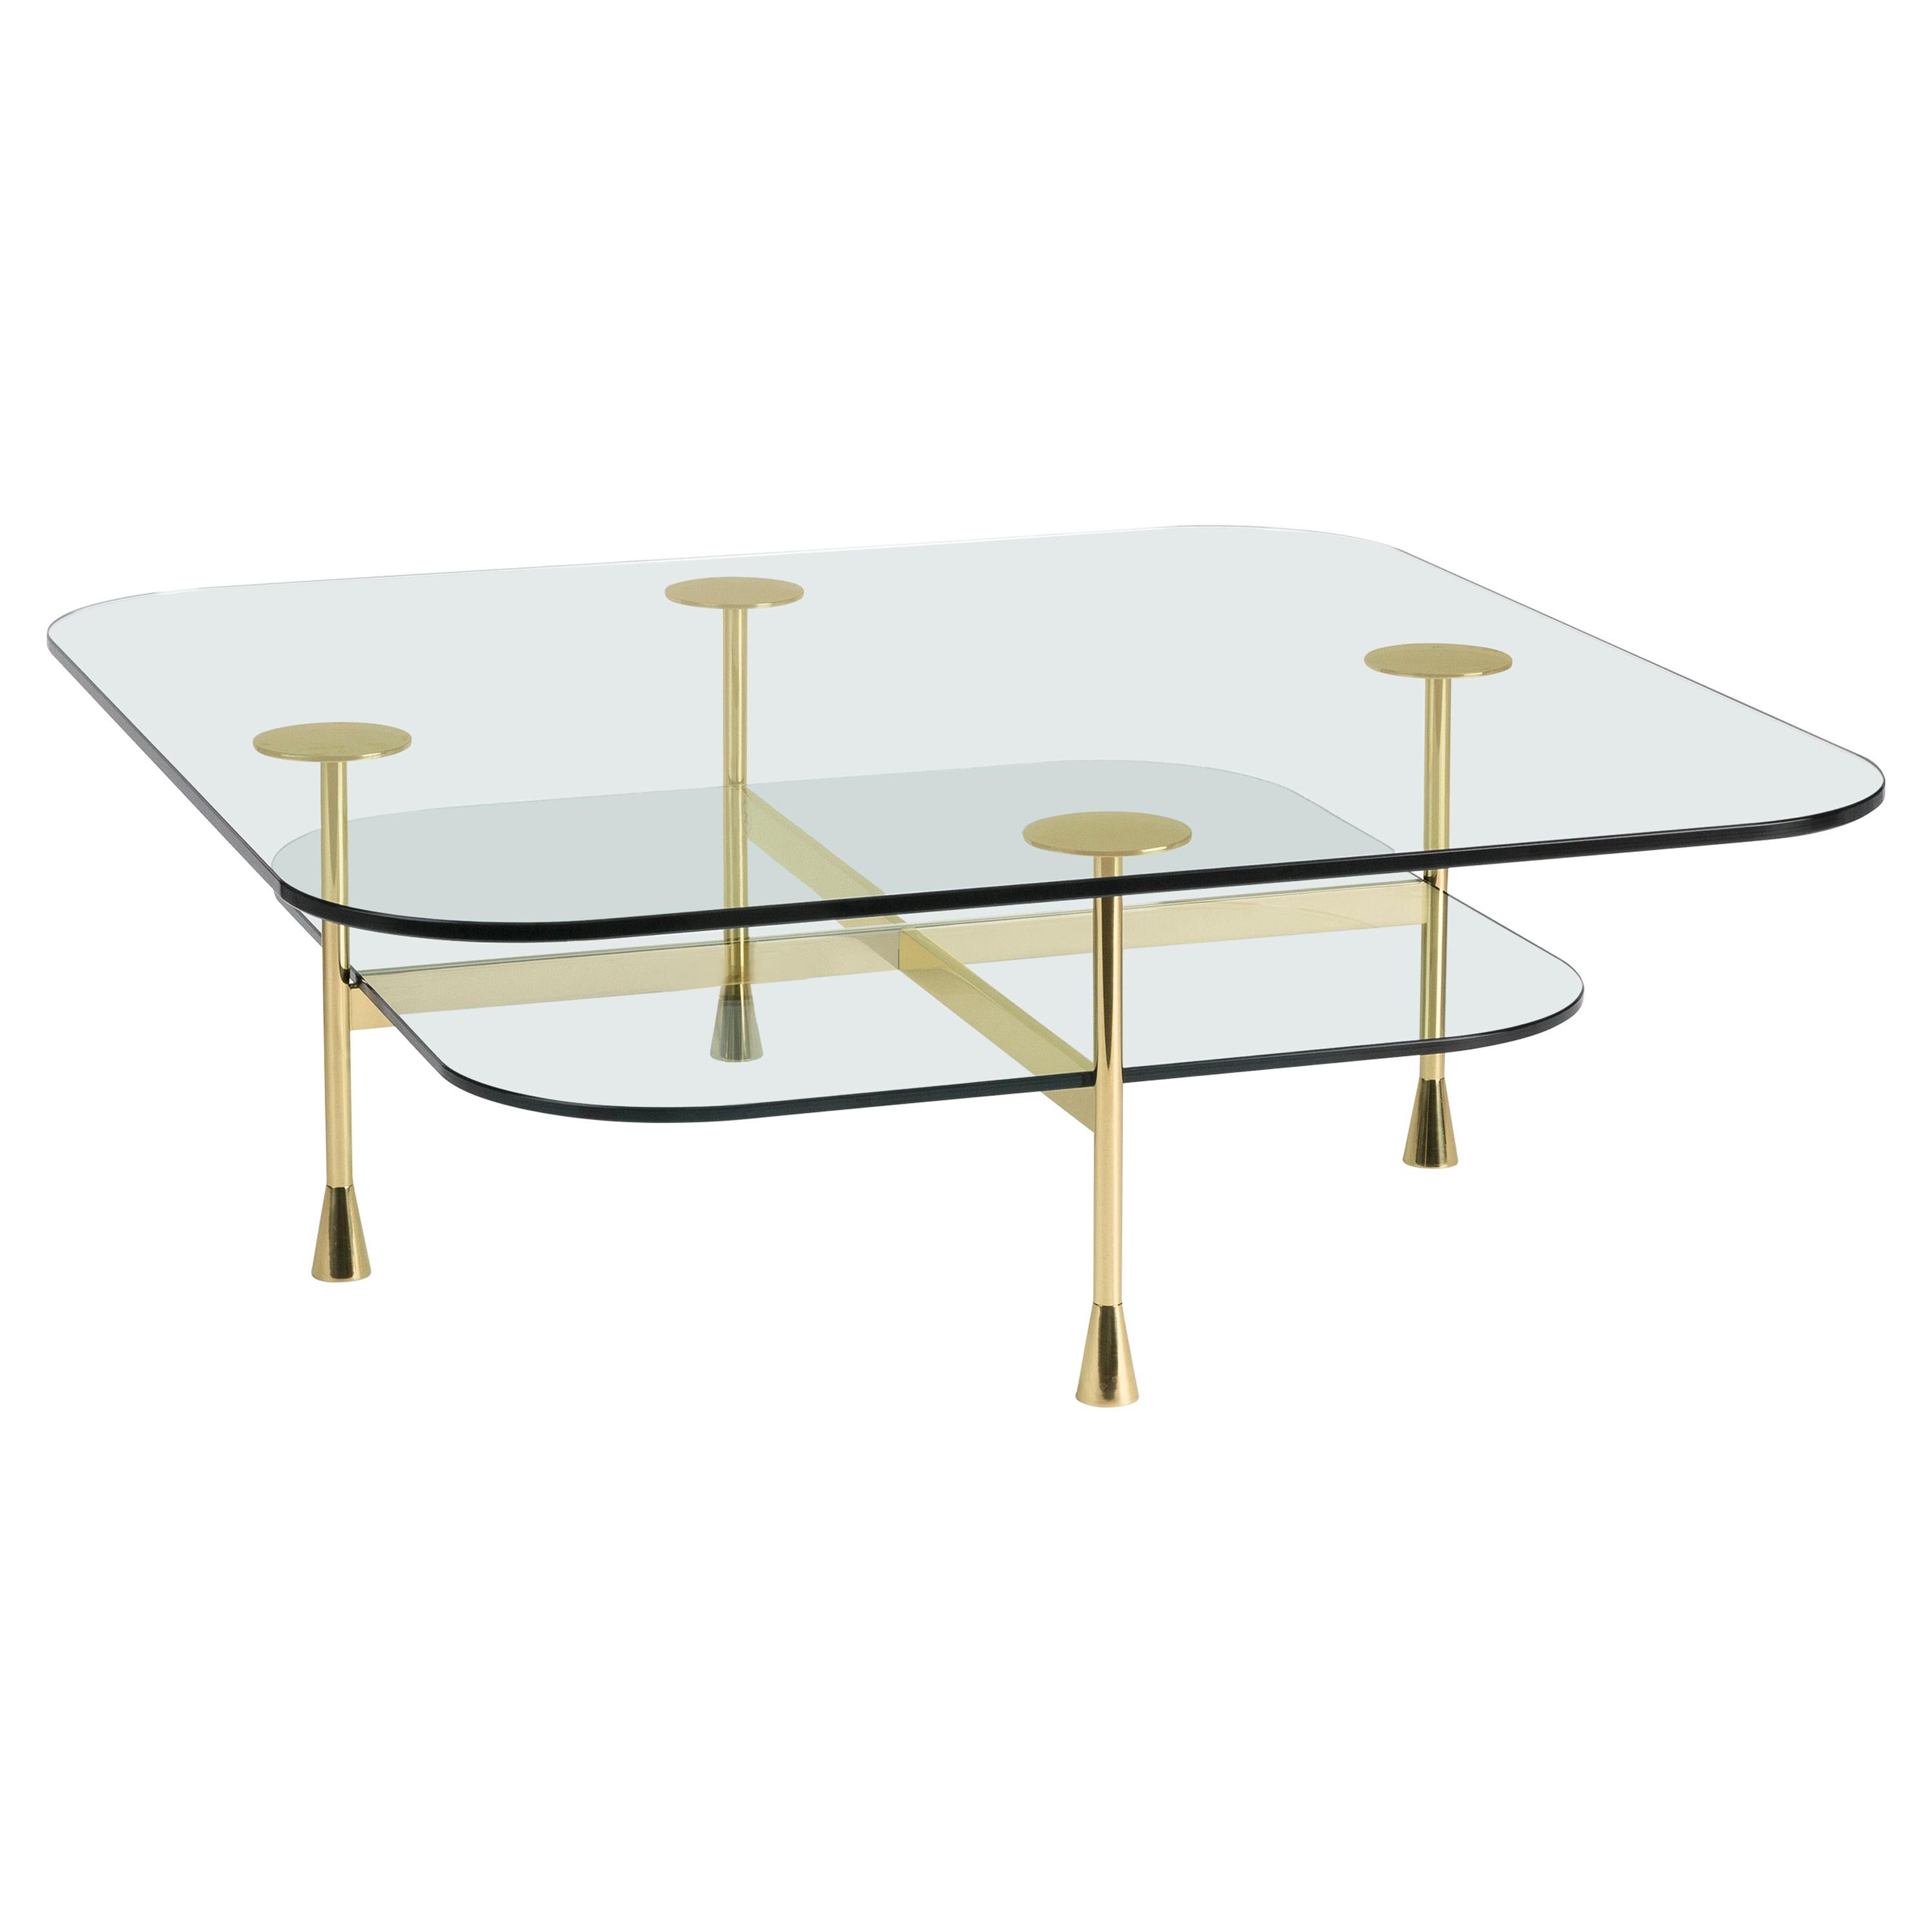 Da Vinci Center Coffee Table in Glass with Polished Brass by Richard Hutten